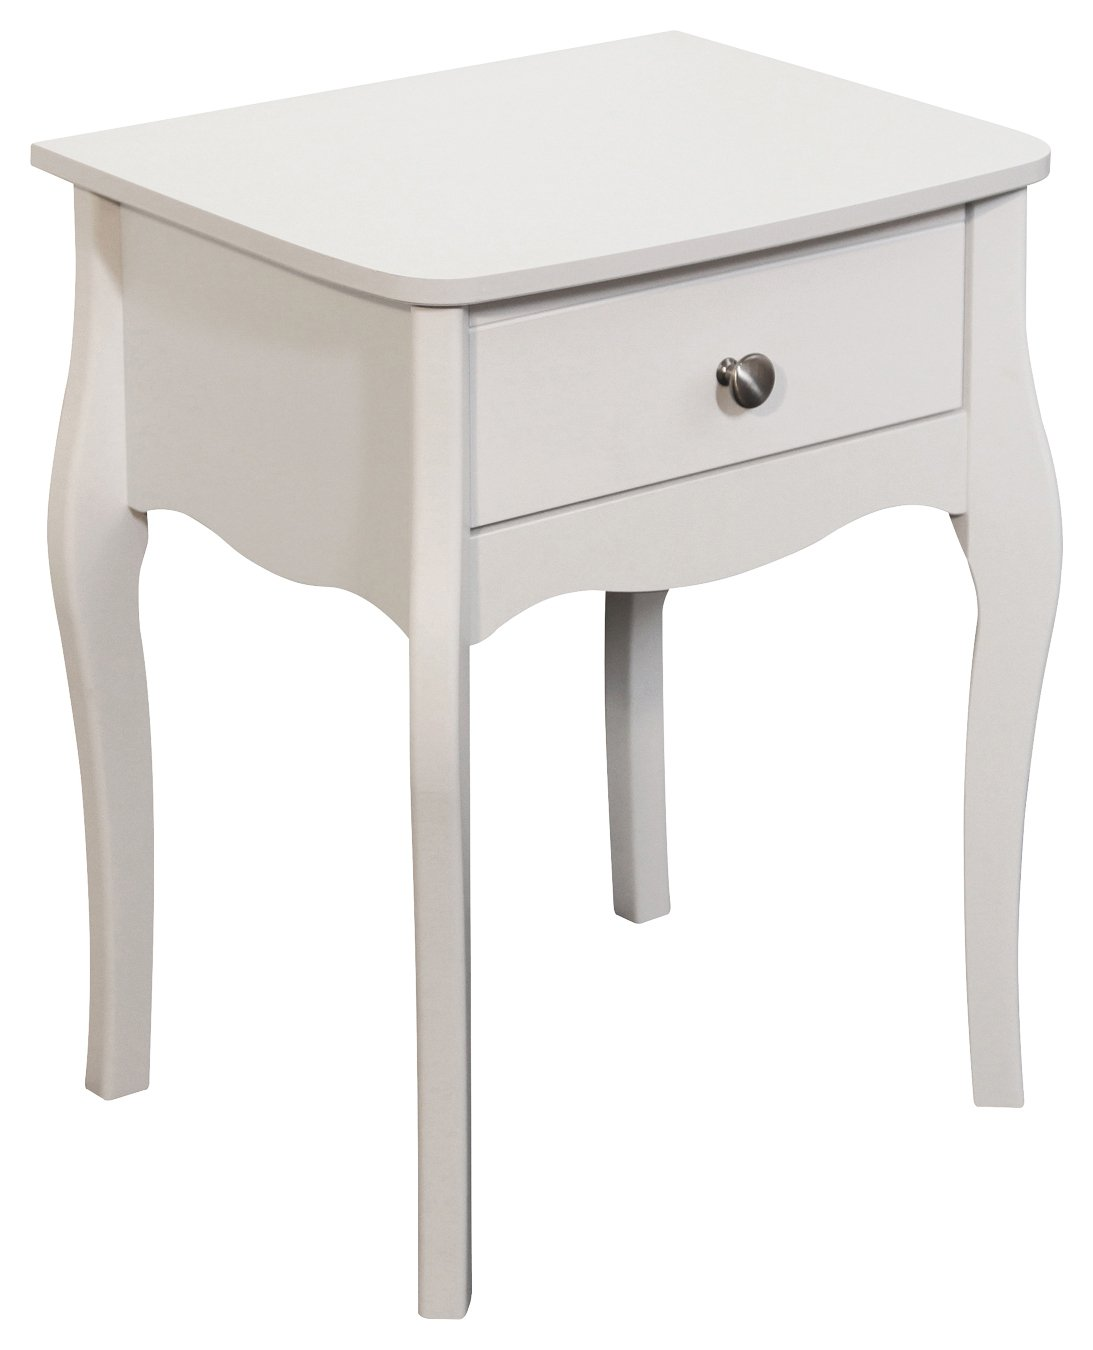 Image of Baroque 1 Drawer Bedside Chest - White